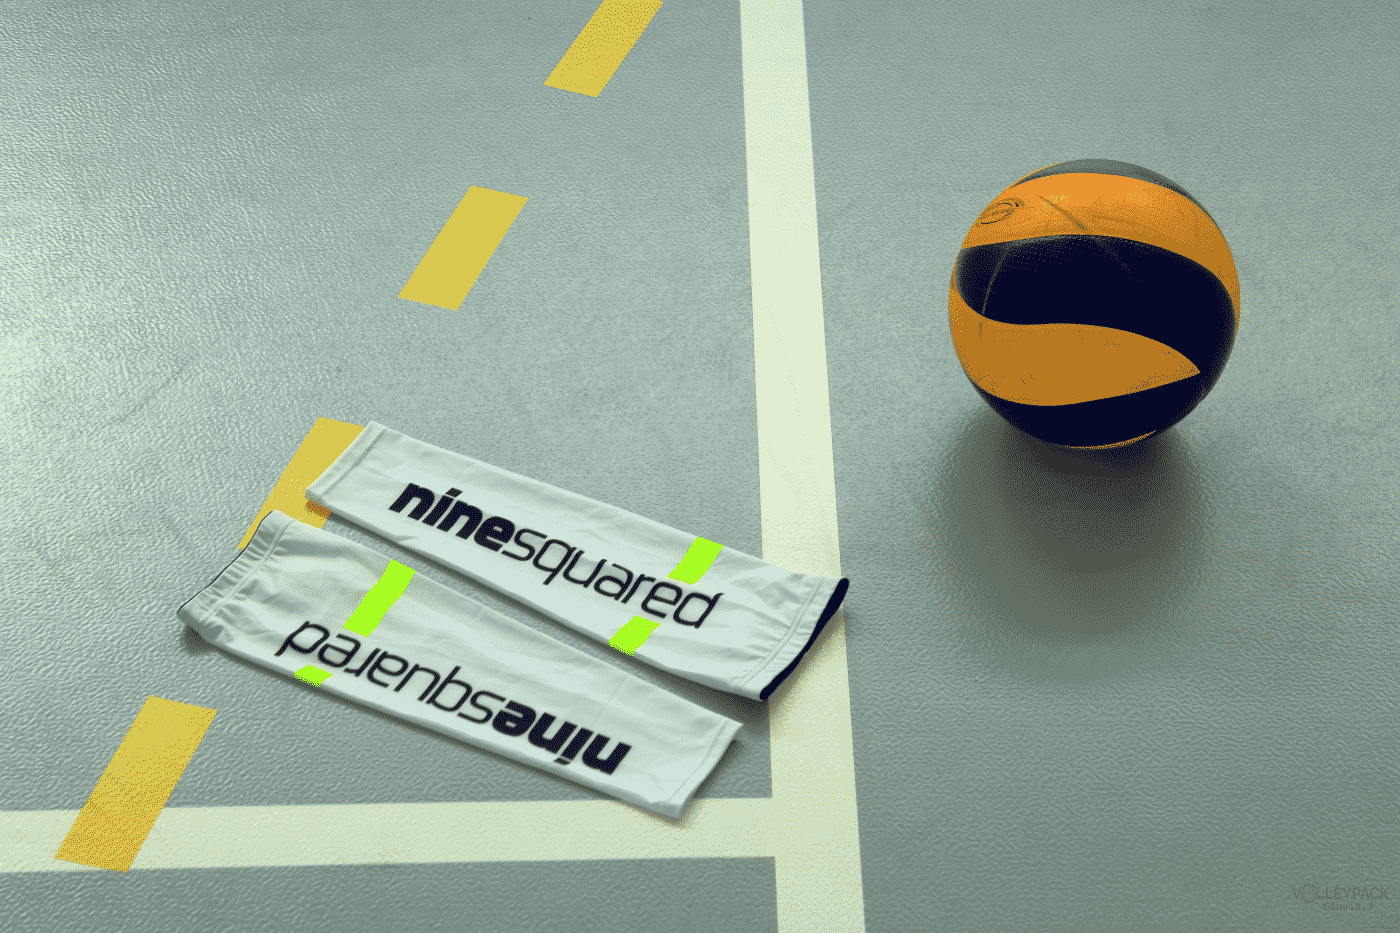 test-volleypack-manchons-volley-ninesquared-arm-sleeves-2019-4